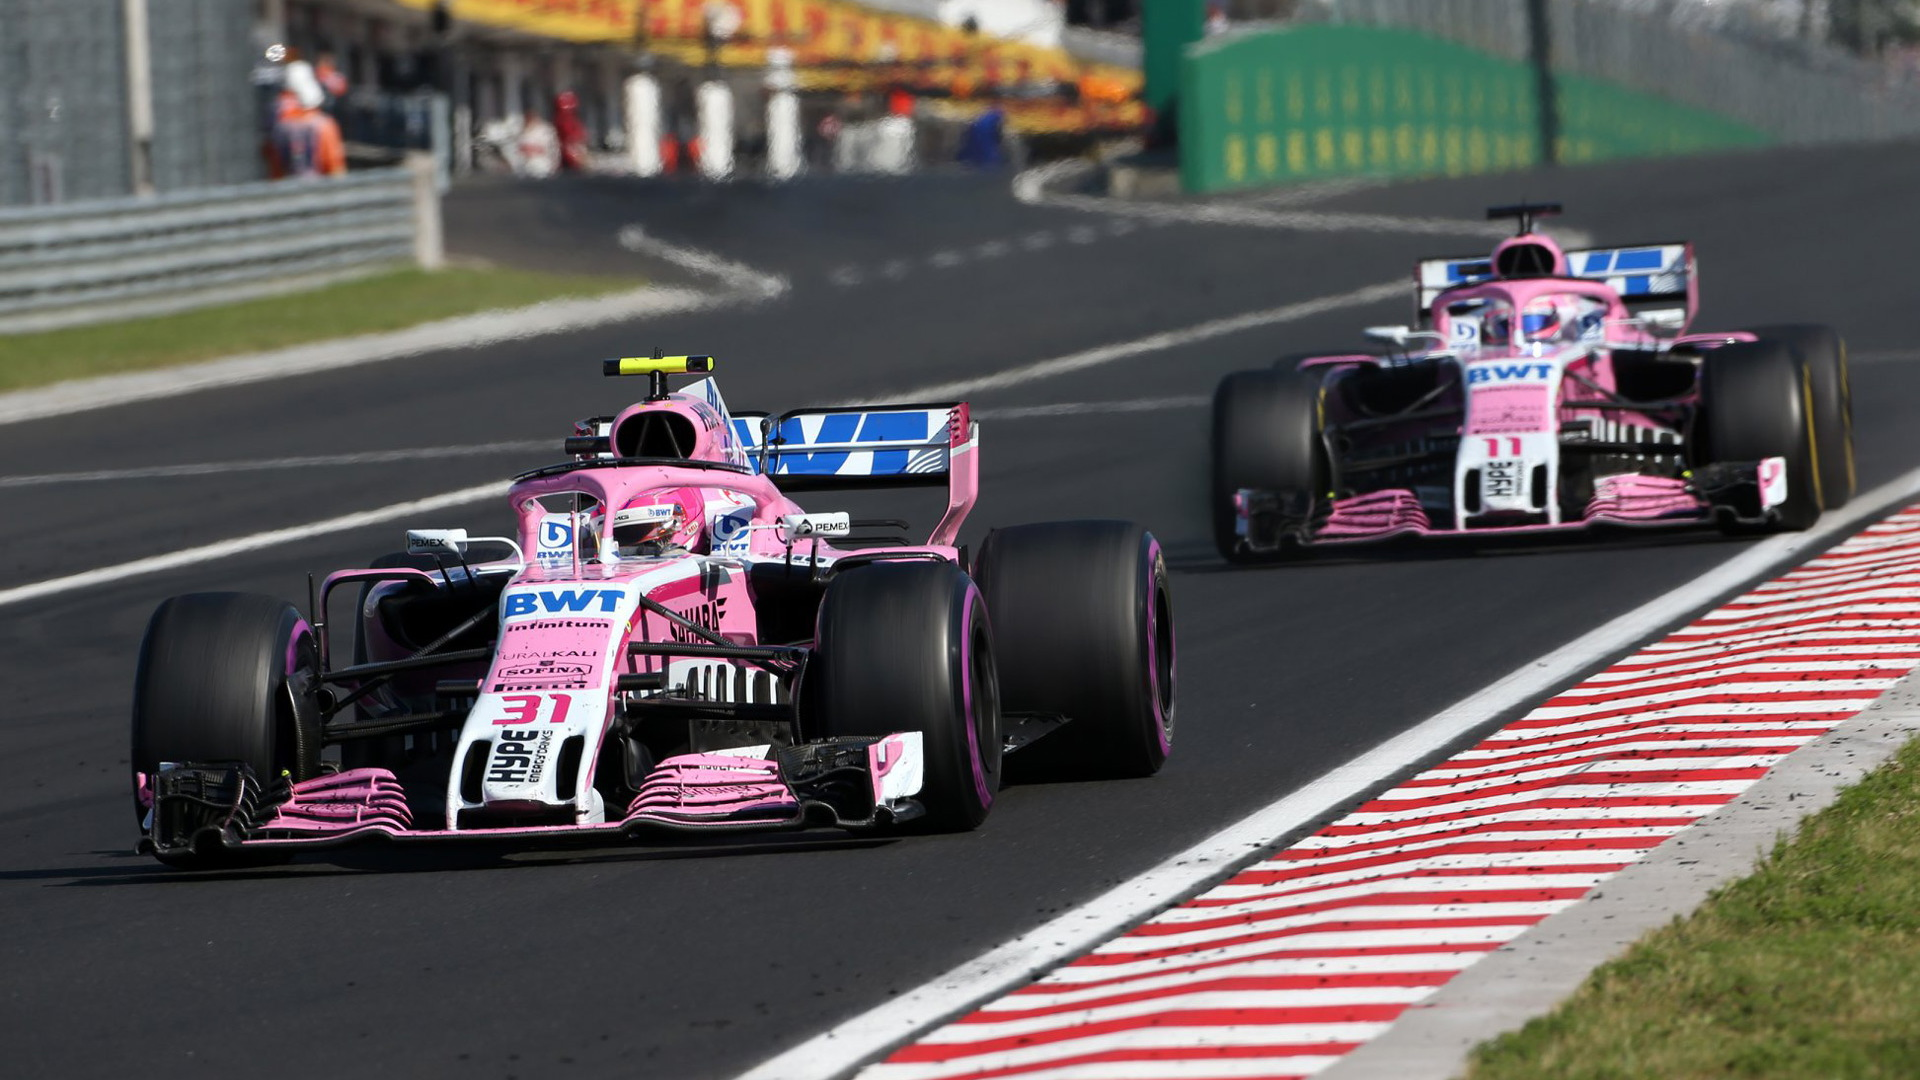 Force India's Esteban Ocon and Sergio Perez at the 2018 Formula 1 Hungarian Grand Prix